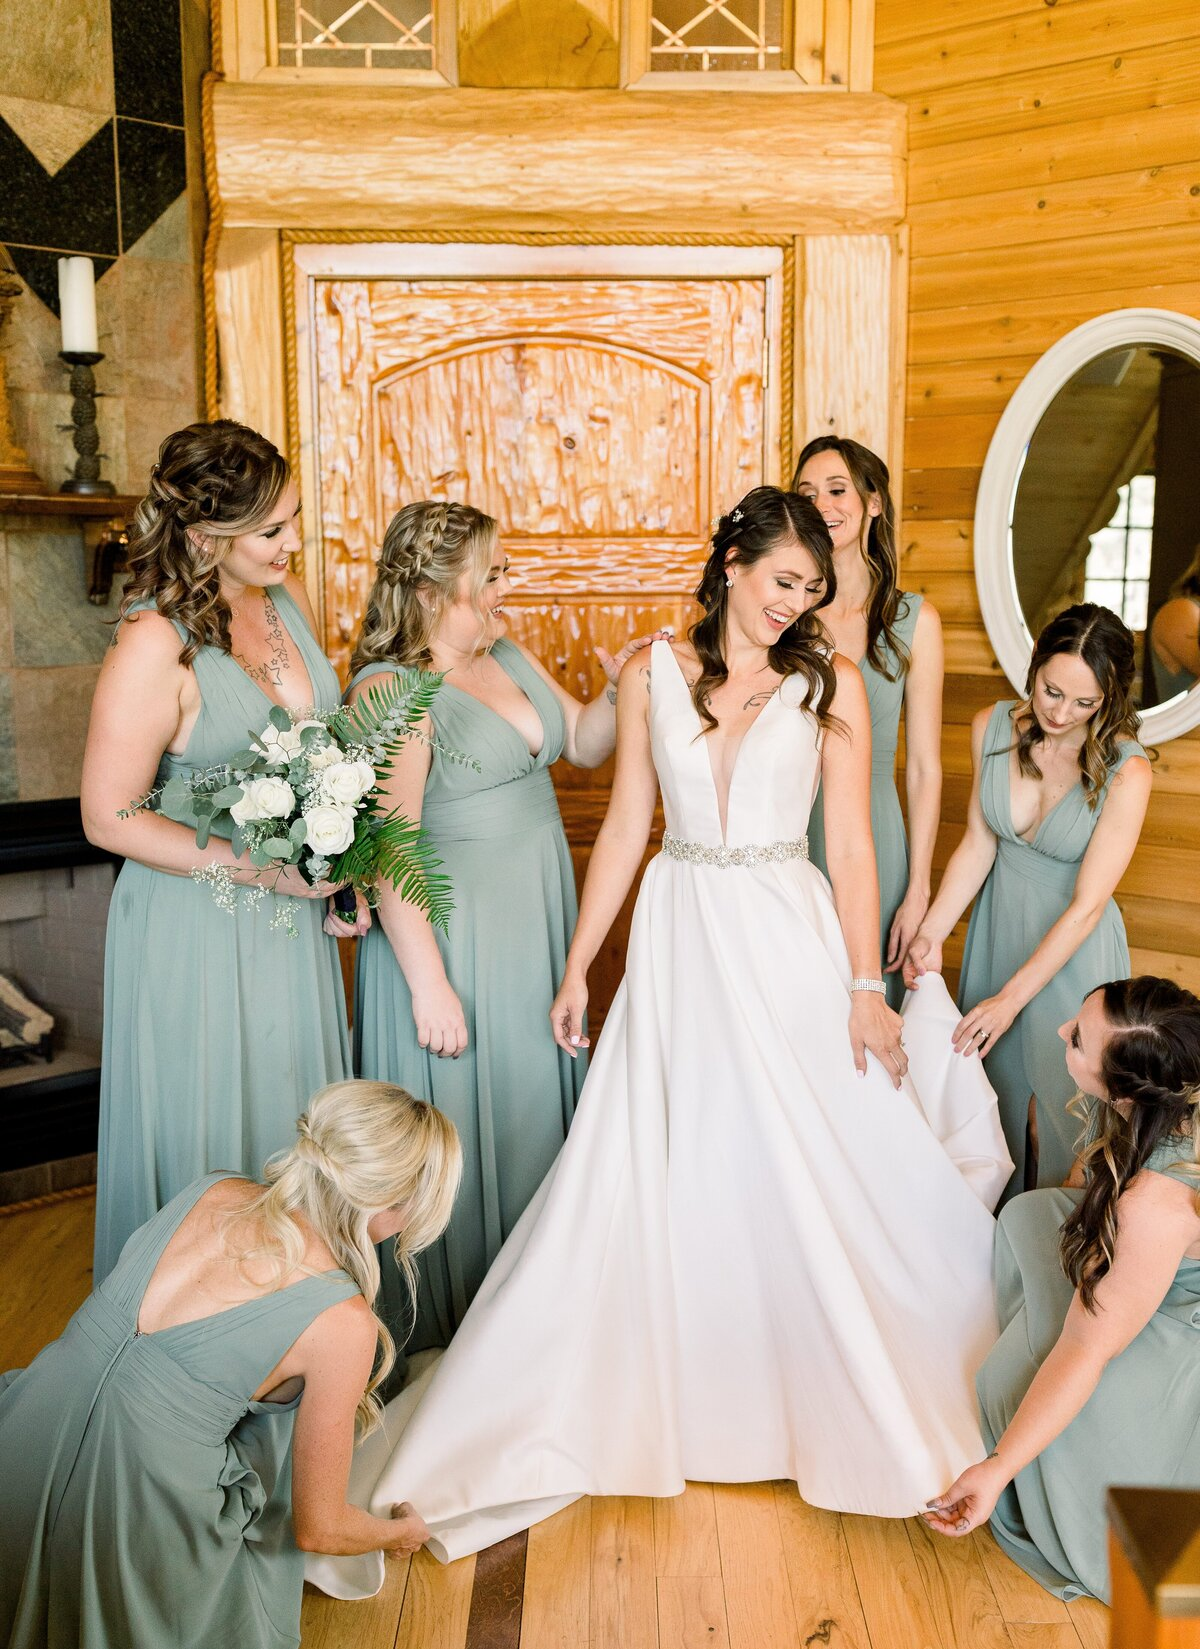 caitlin_audrey_photography (11 of 31)